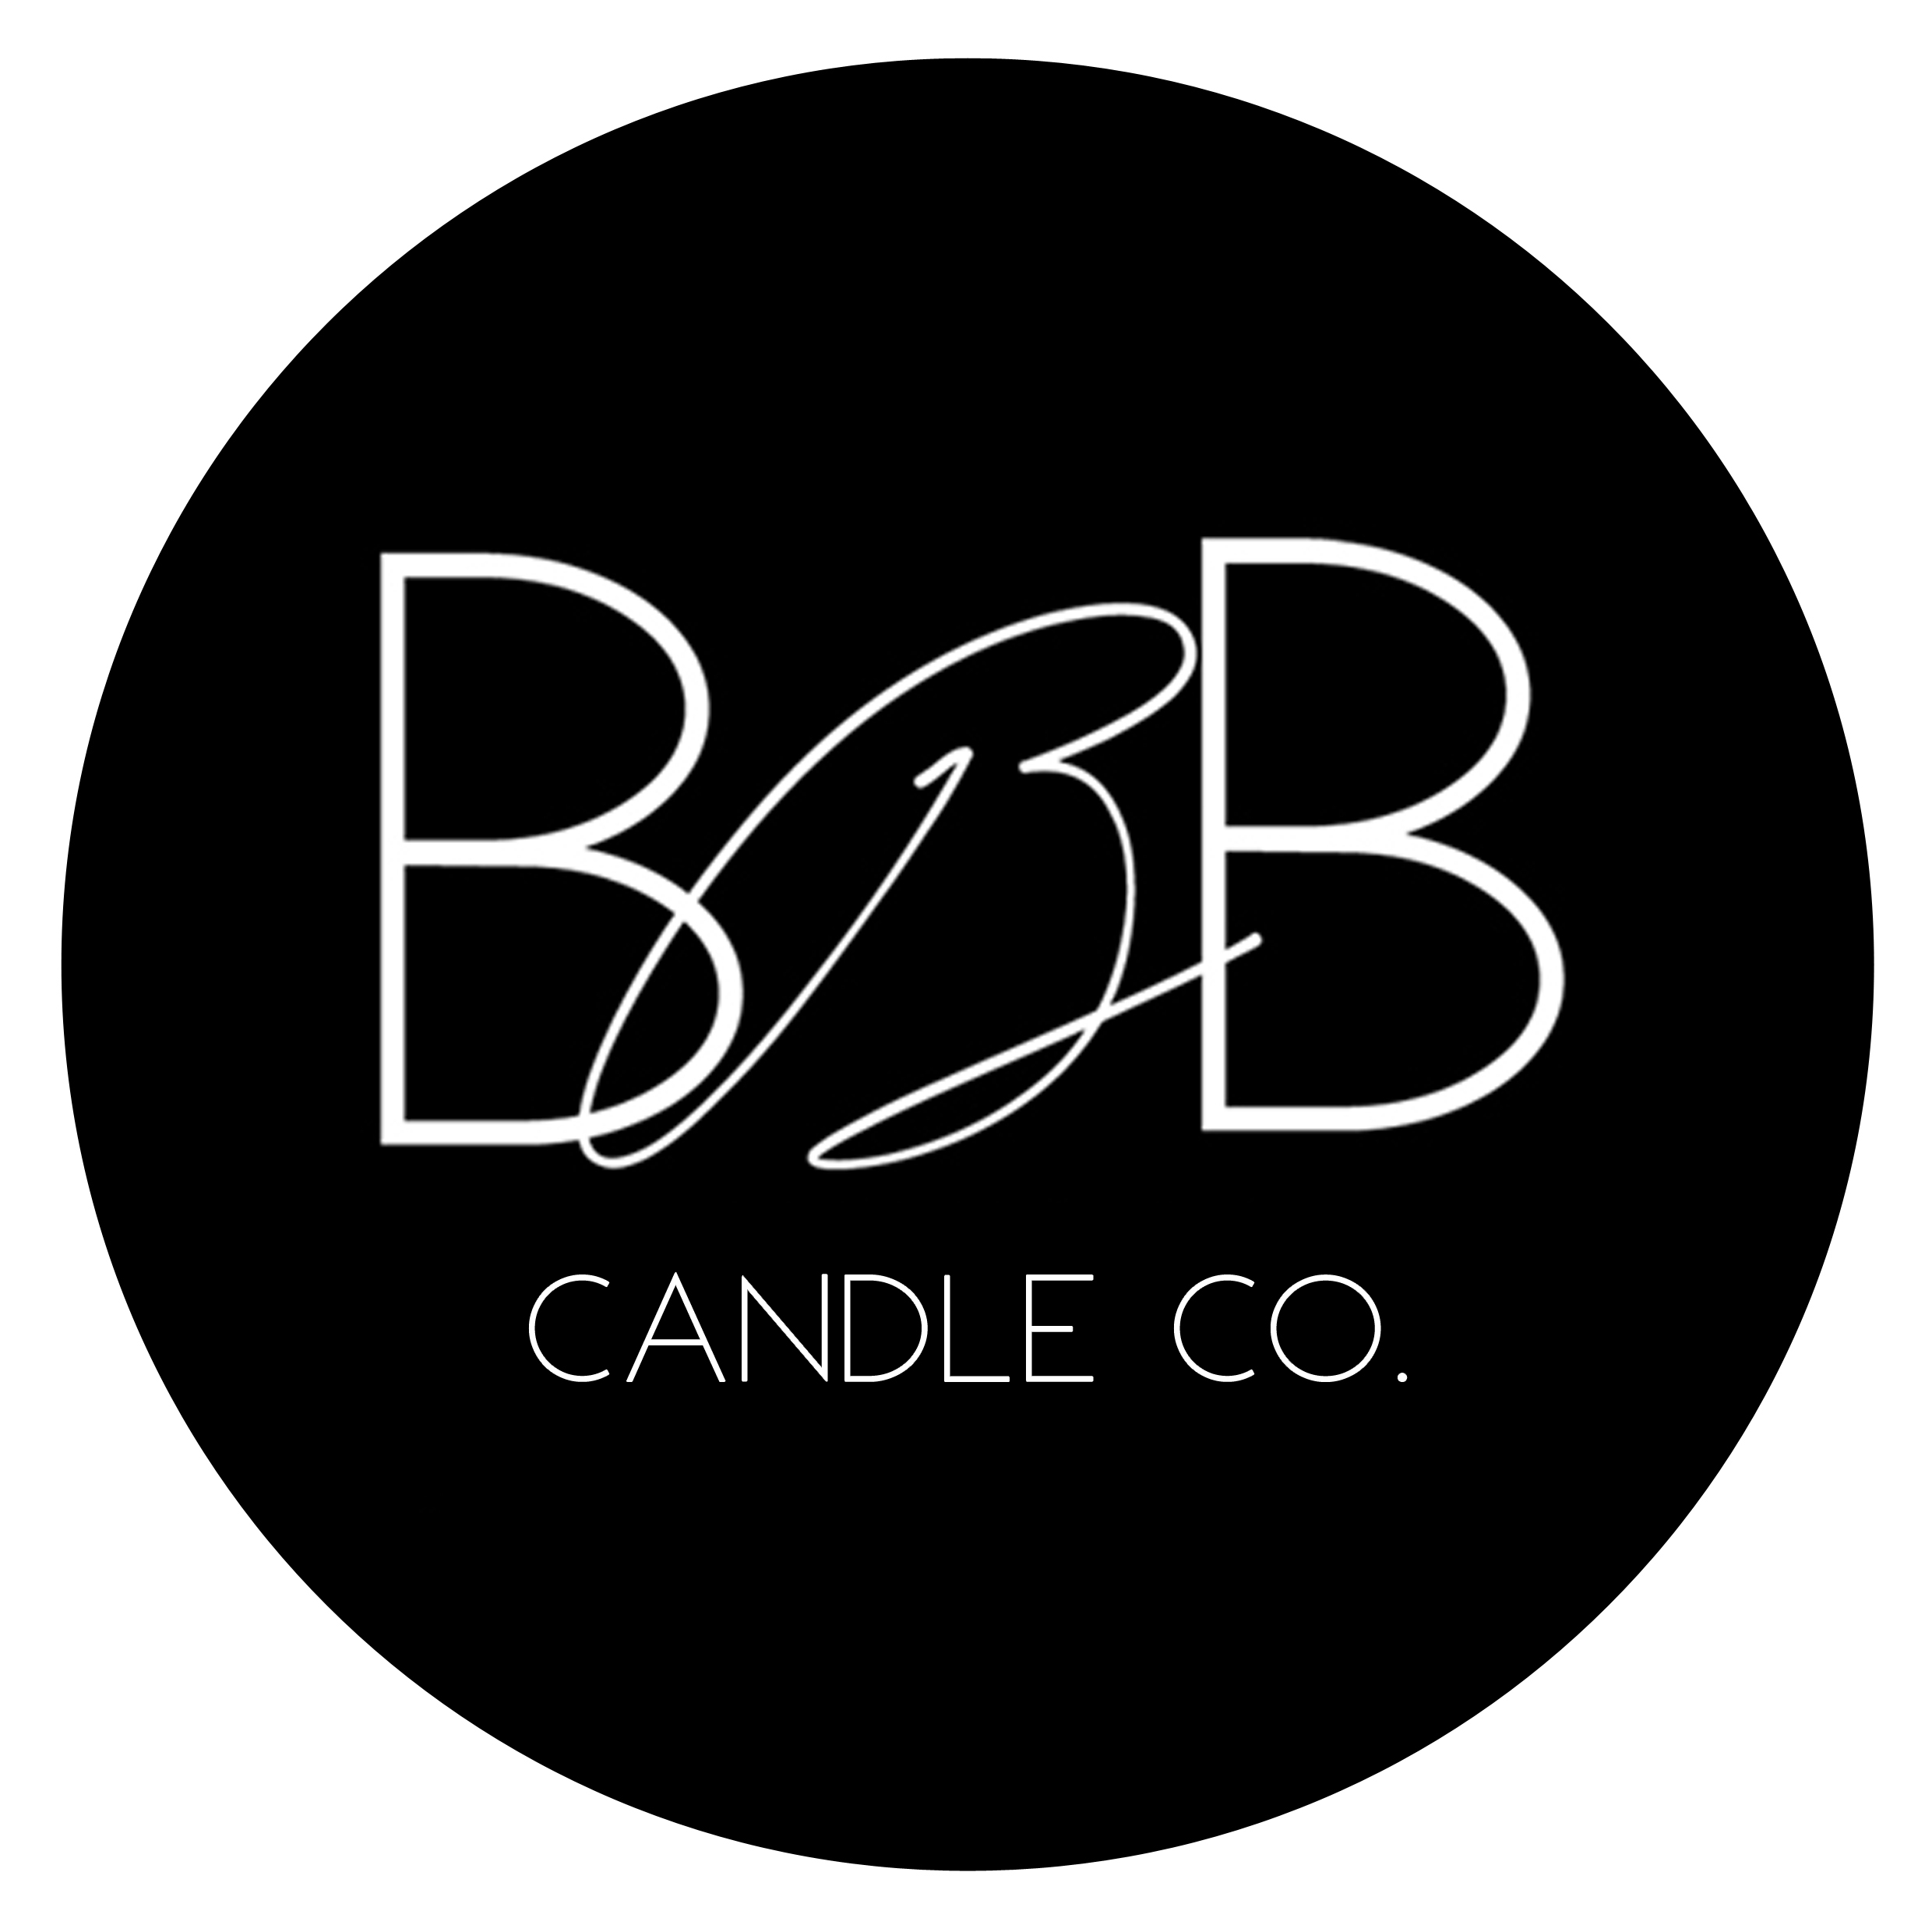 Burn Baby Burn Candle Co